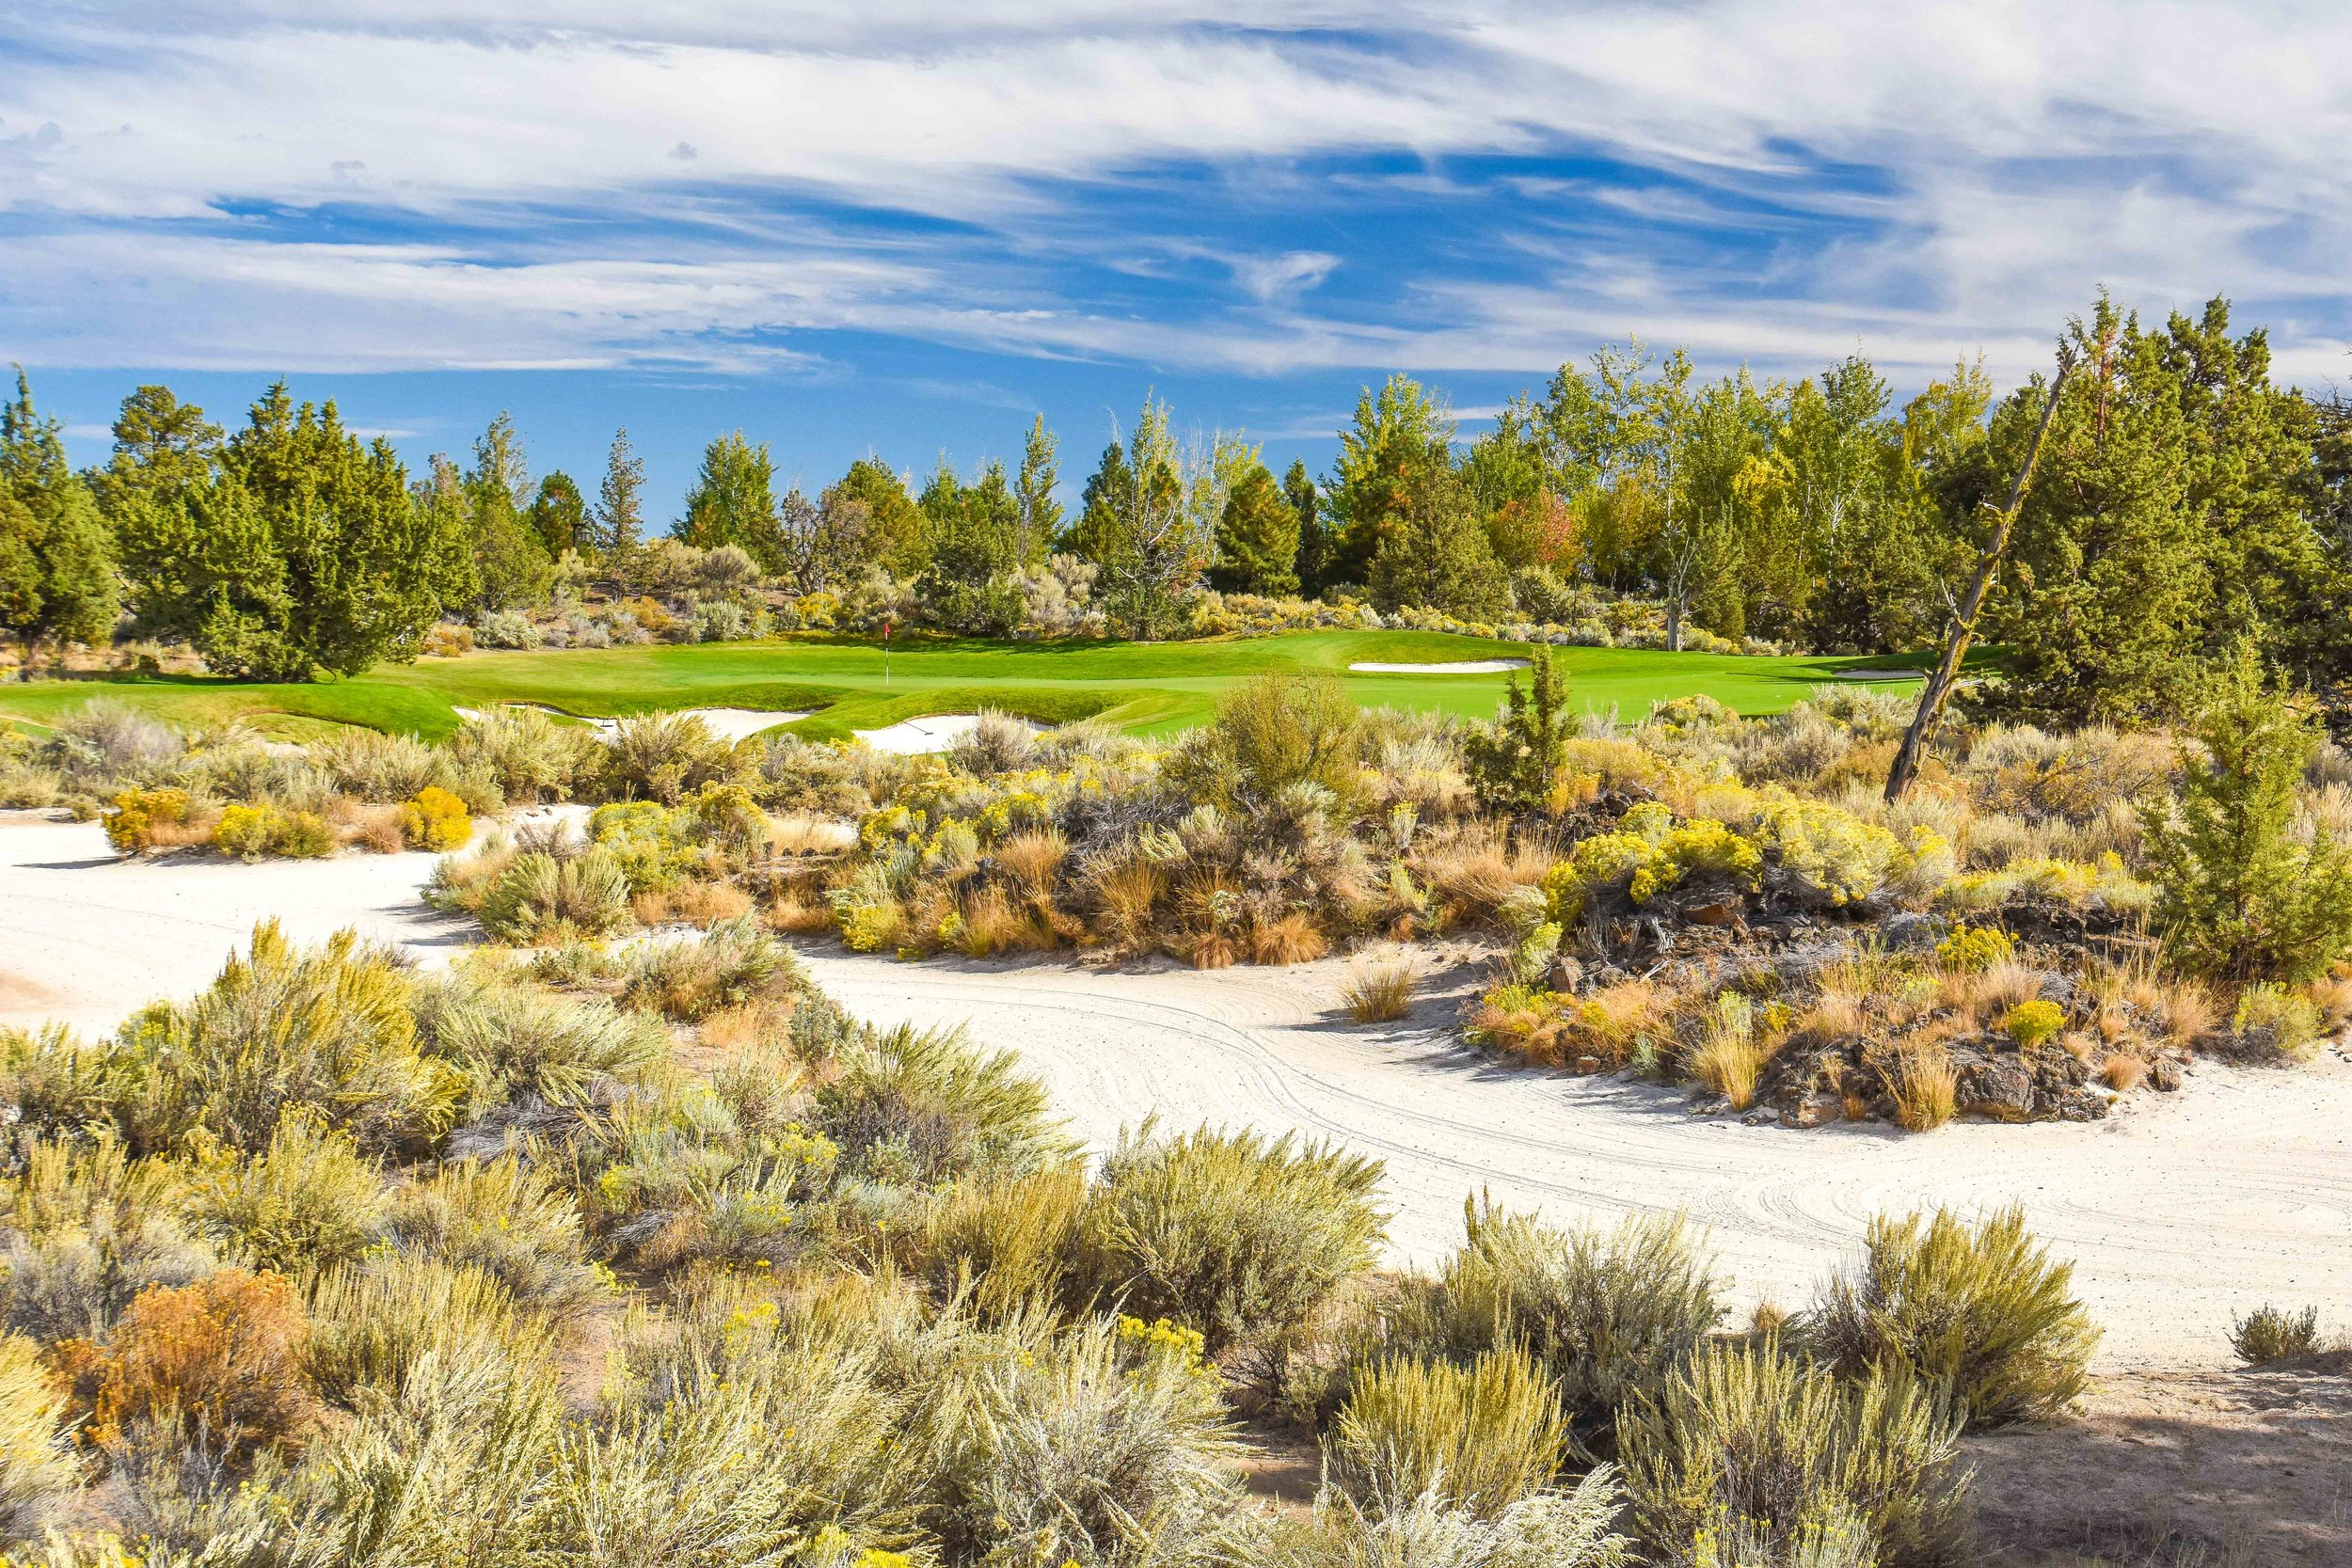 The 15th hole at Nicklaus' Pronghorn course